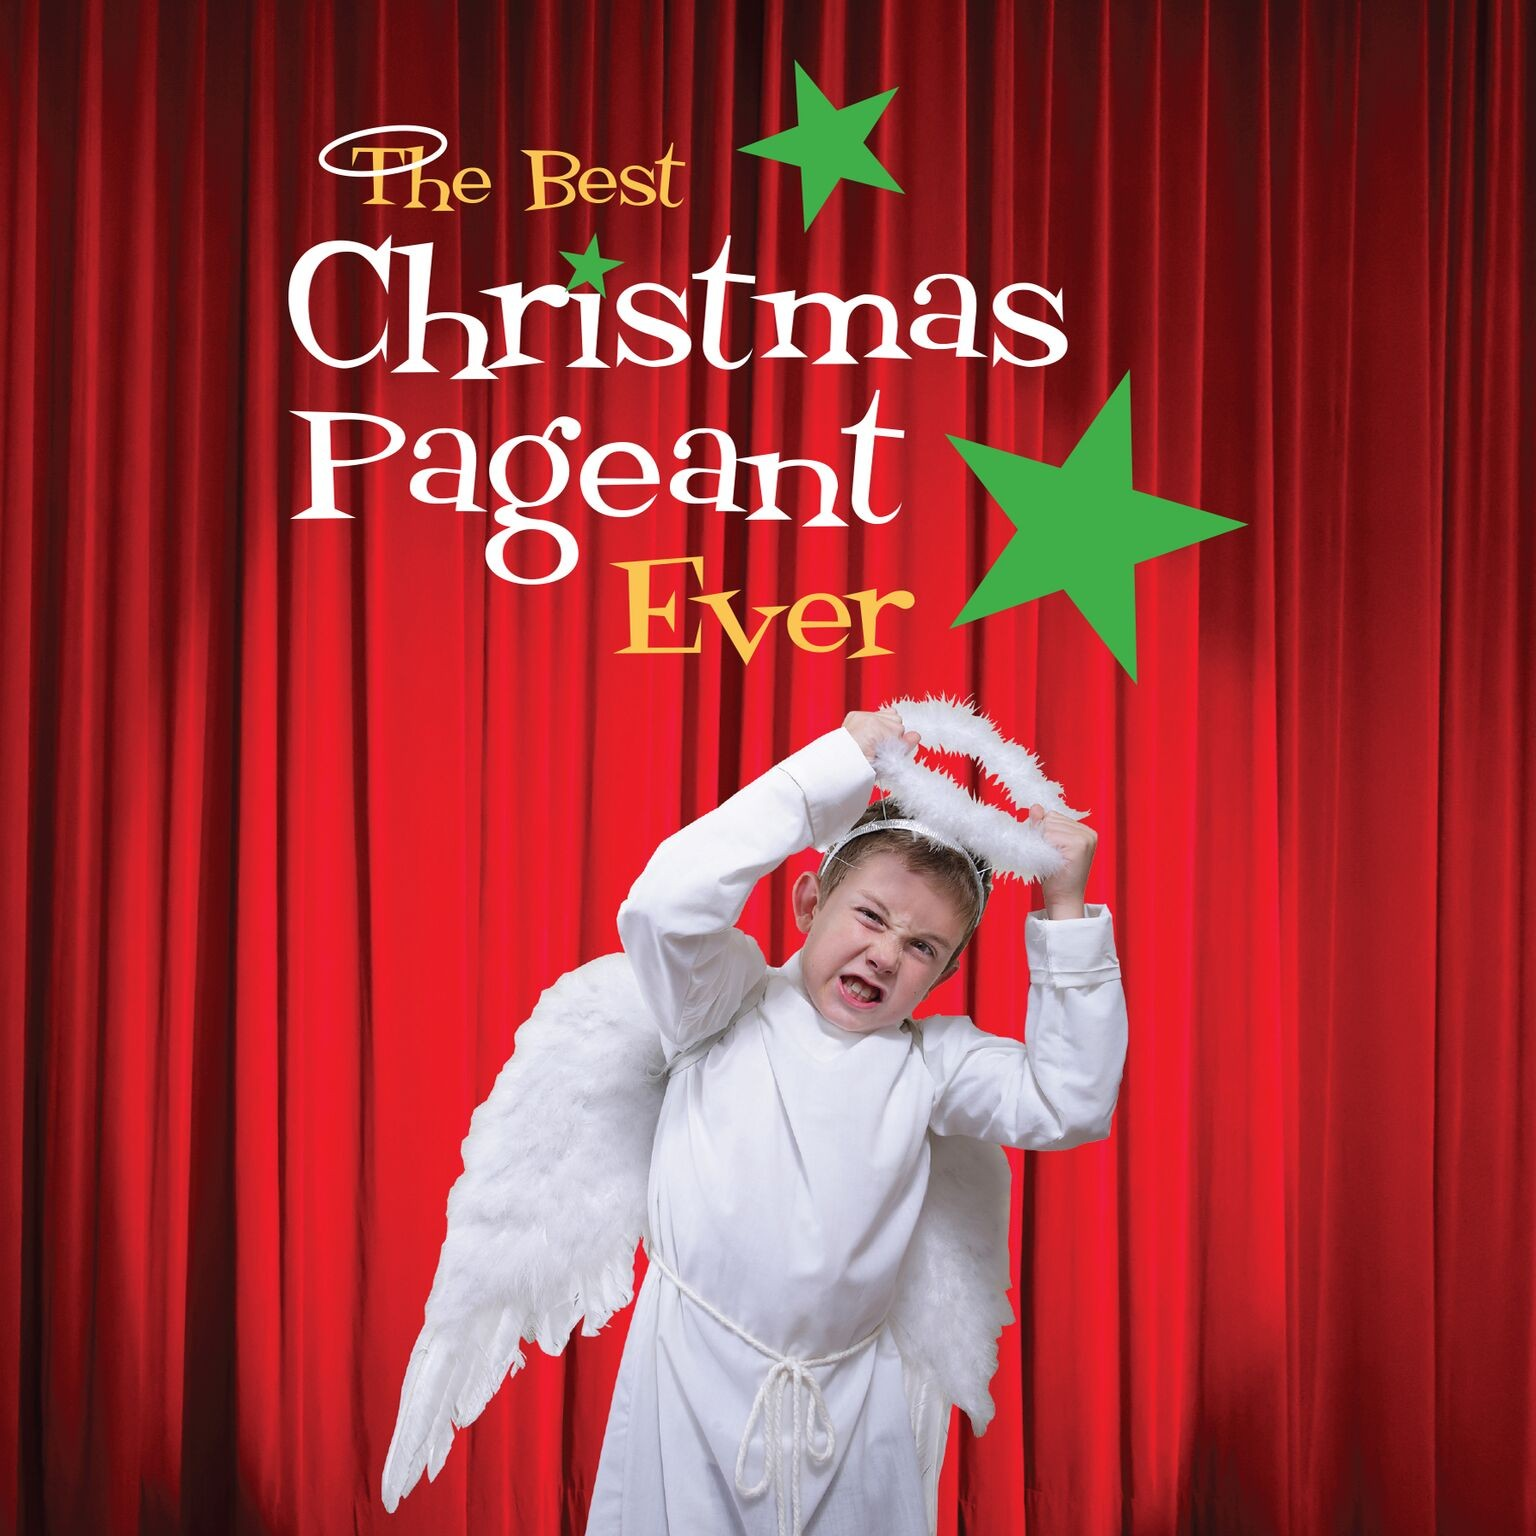 click to enlarge 849d6c07_christmas_thumbnail_previewjpegjpg - The Best Christmas Pageant Ever